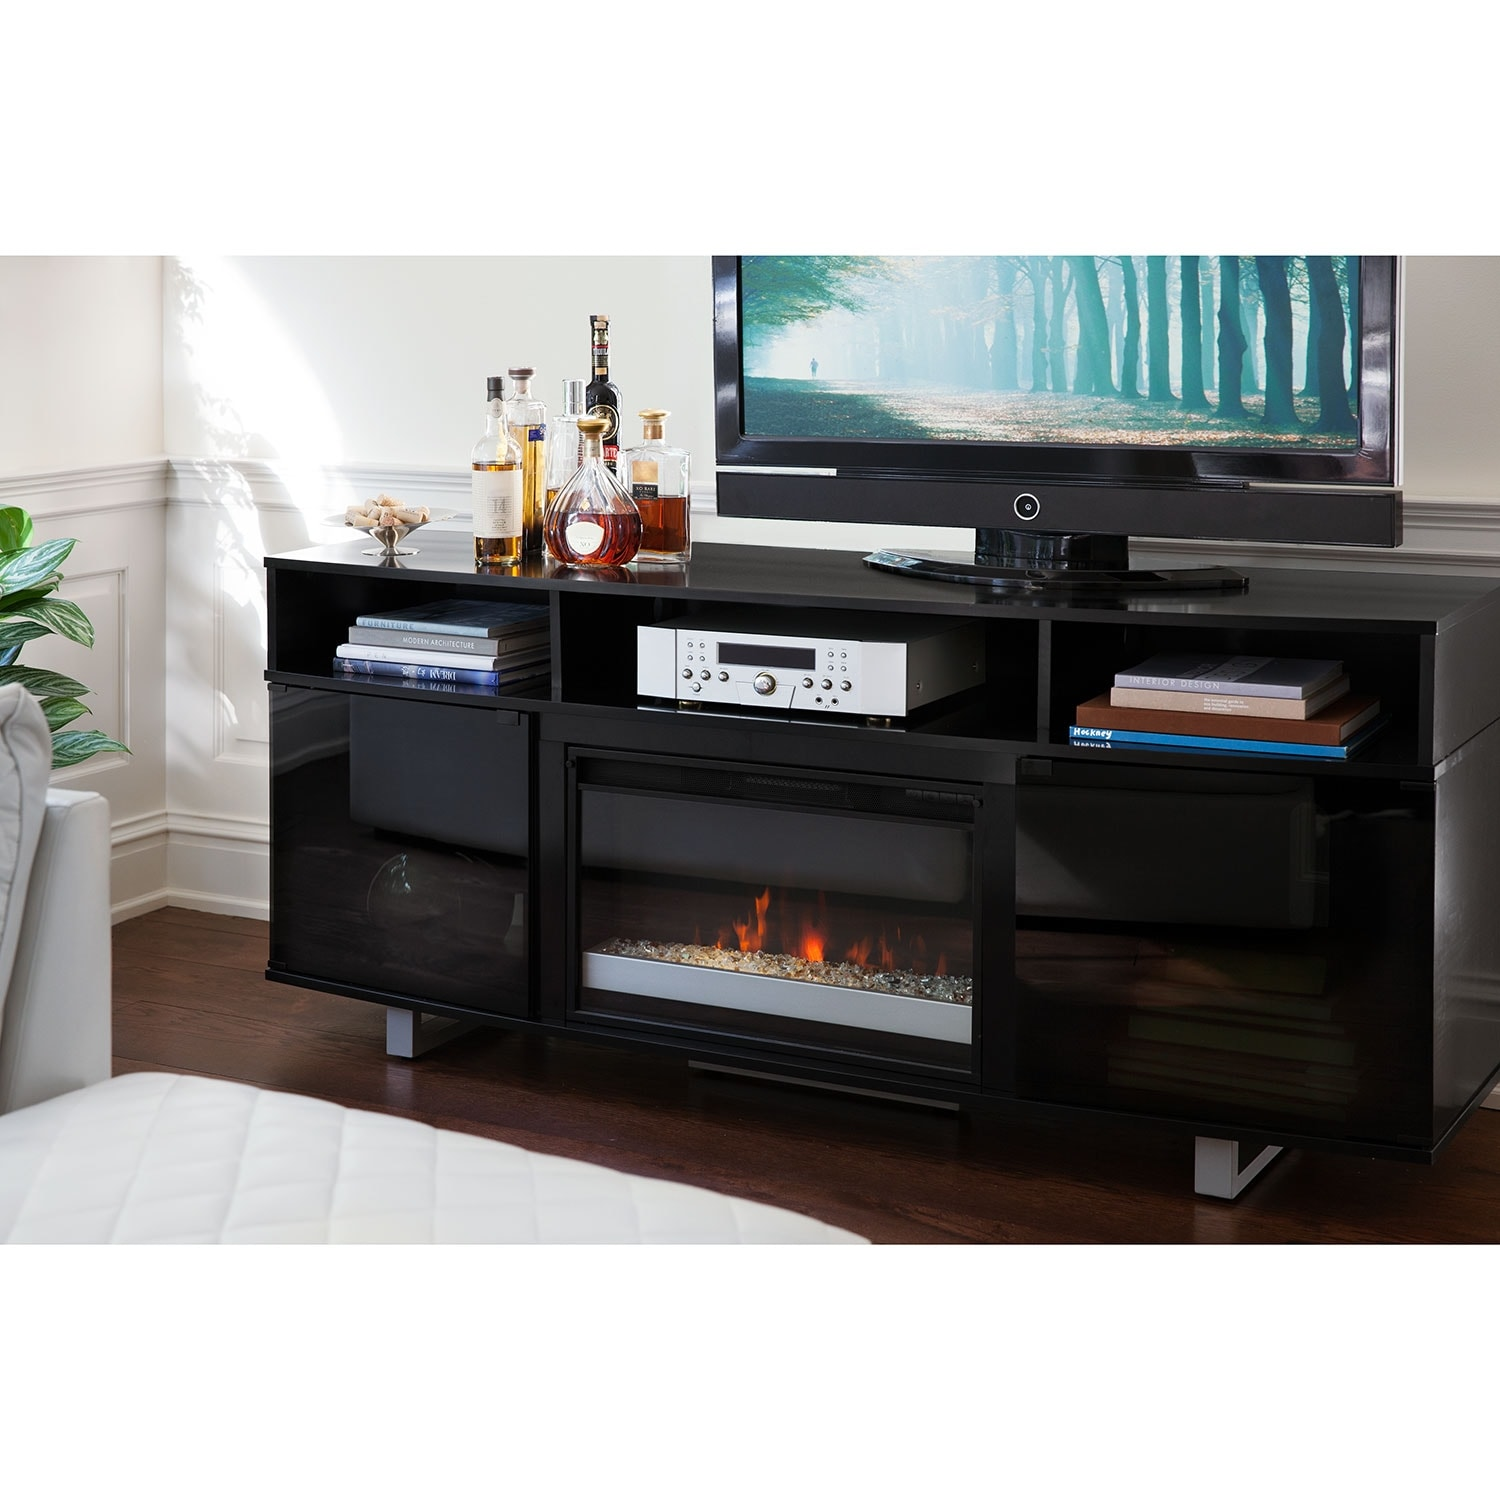 pacer  contemporary fireplace tv stand  black  value city  - click to change image